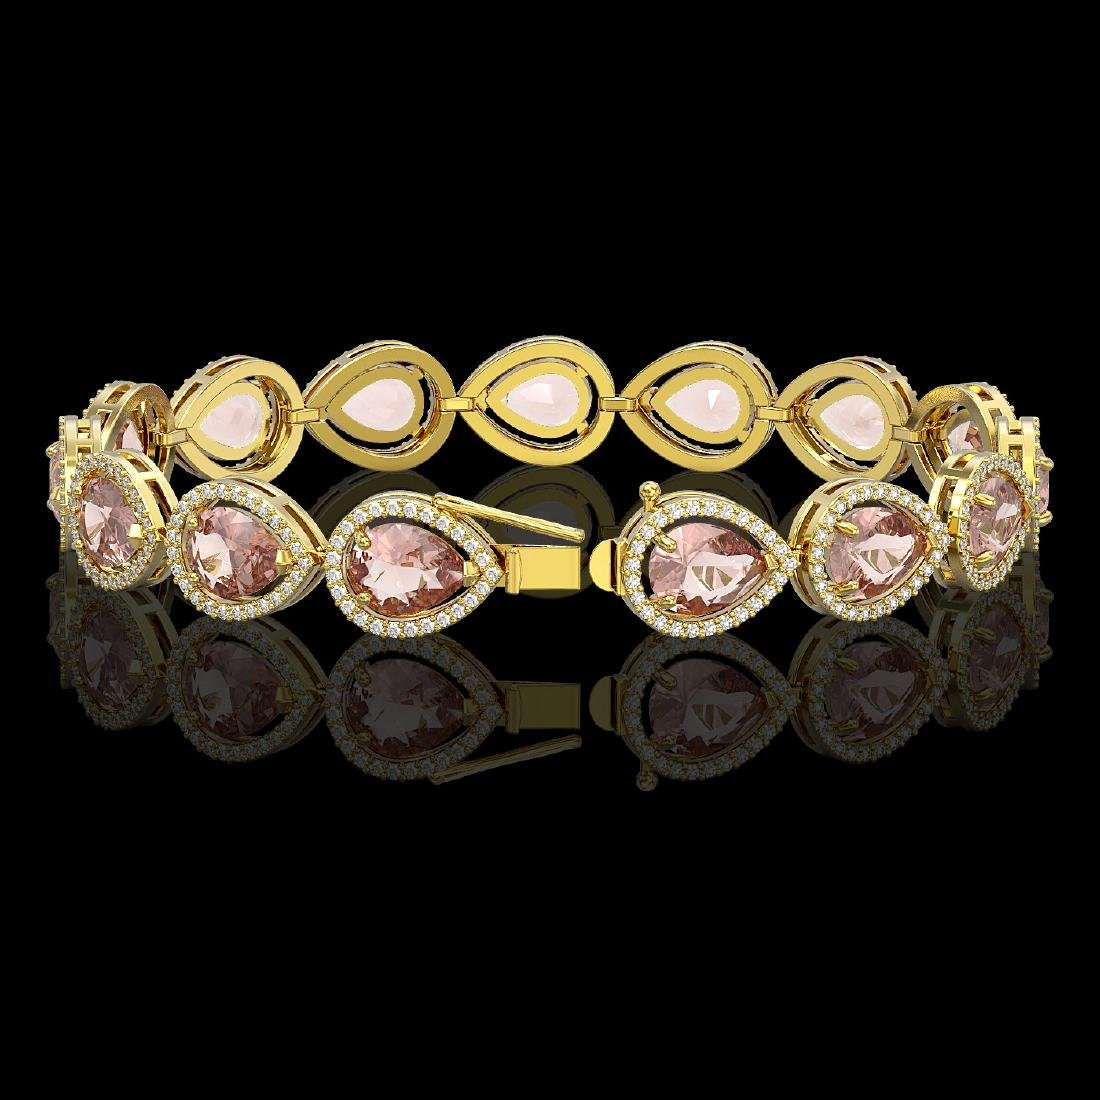 19.55 CTW Morganite & Diamond Halo Bracelet 10K Yellow - 2